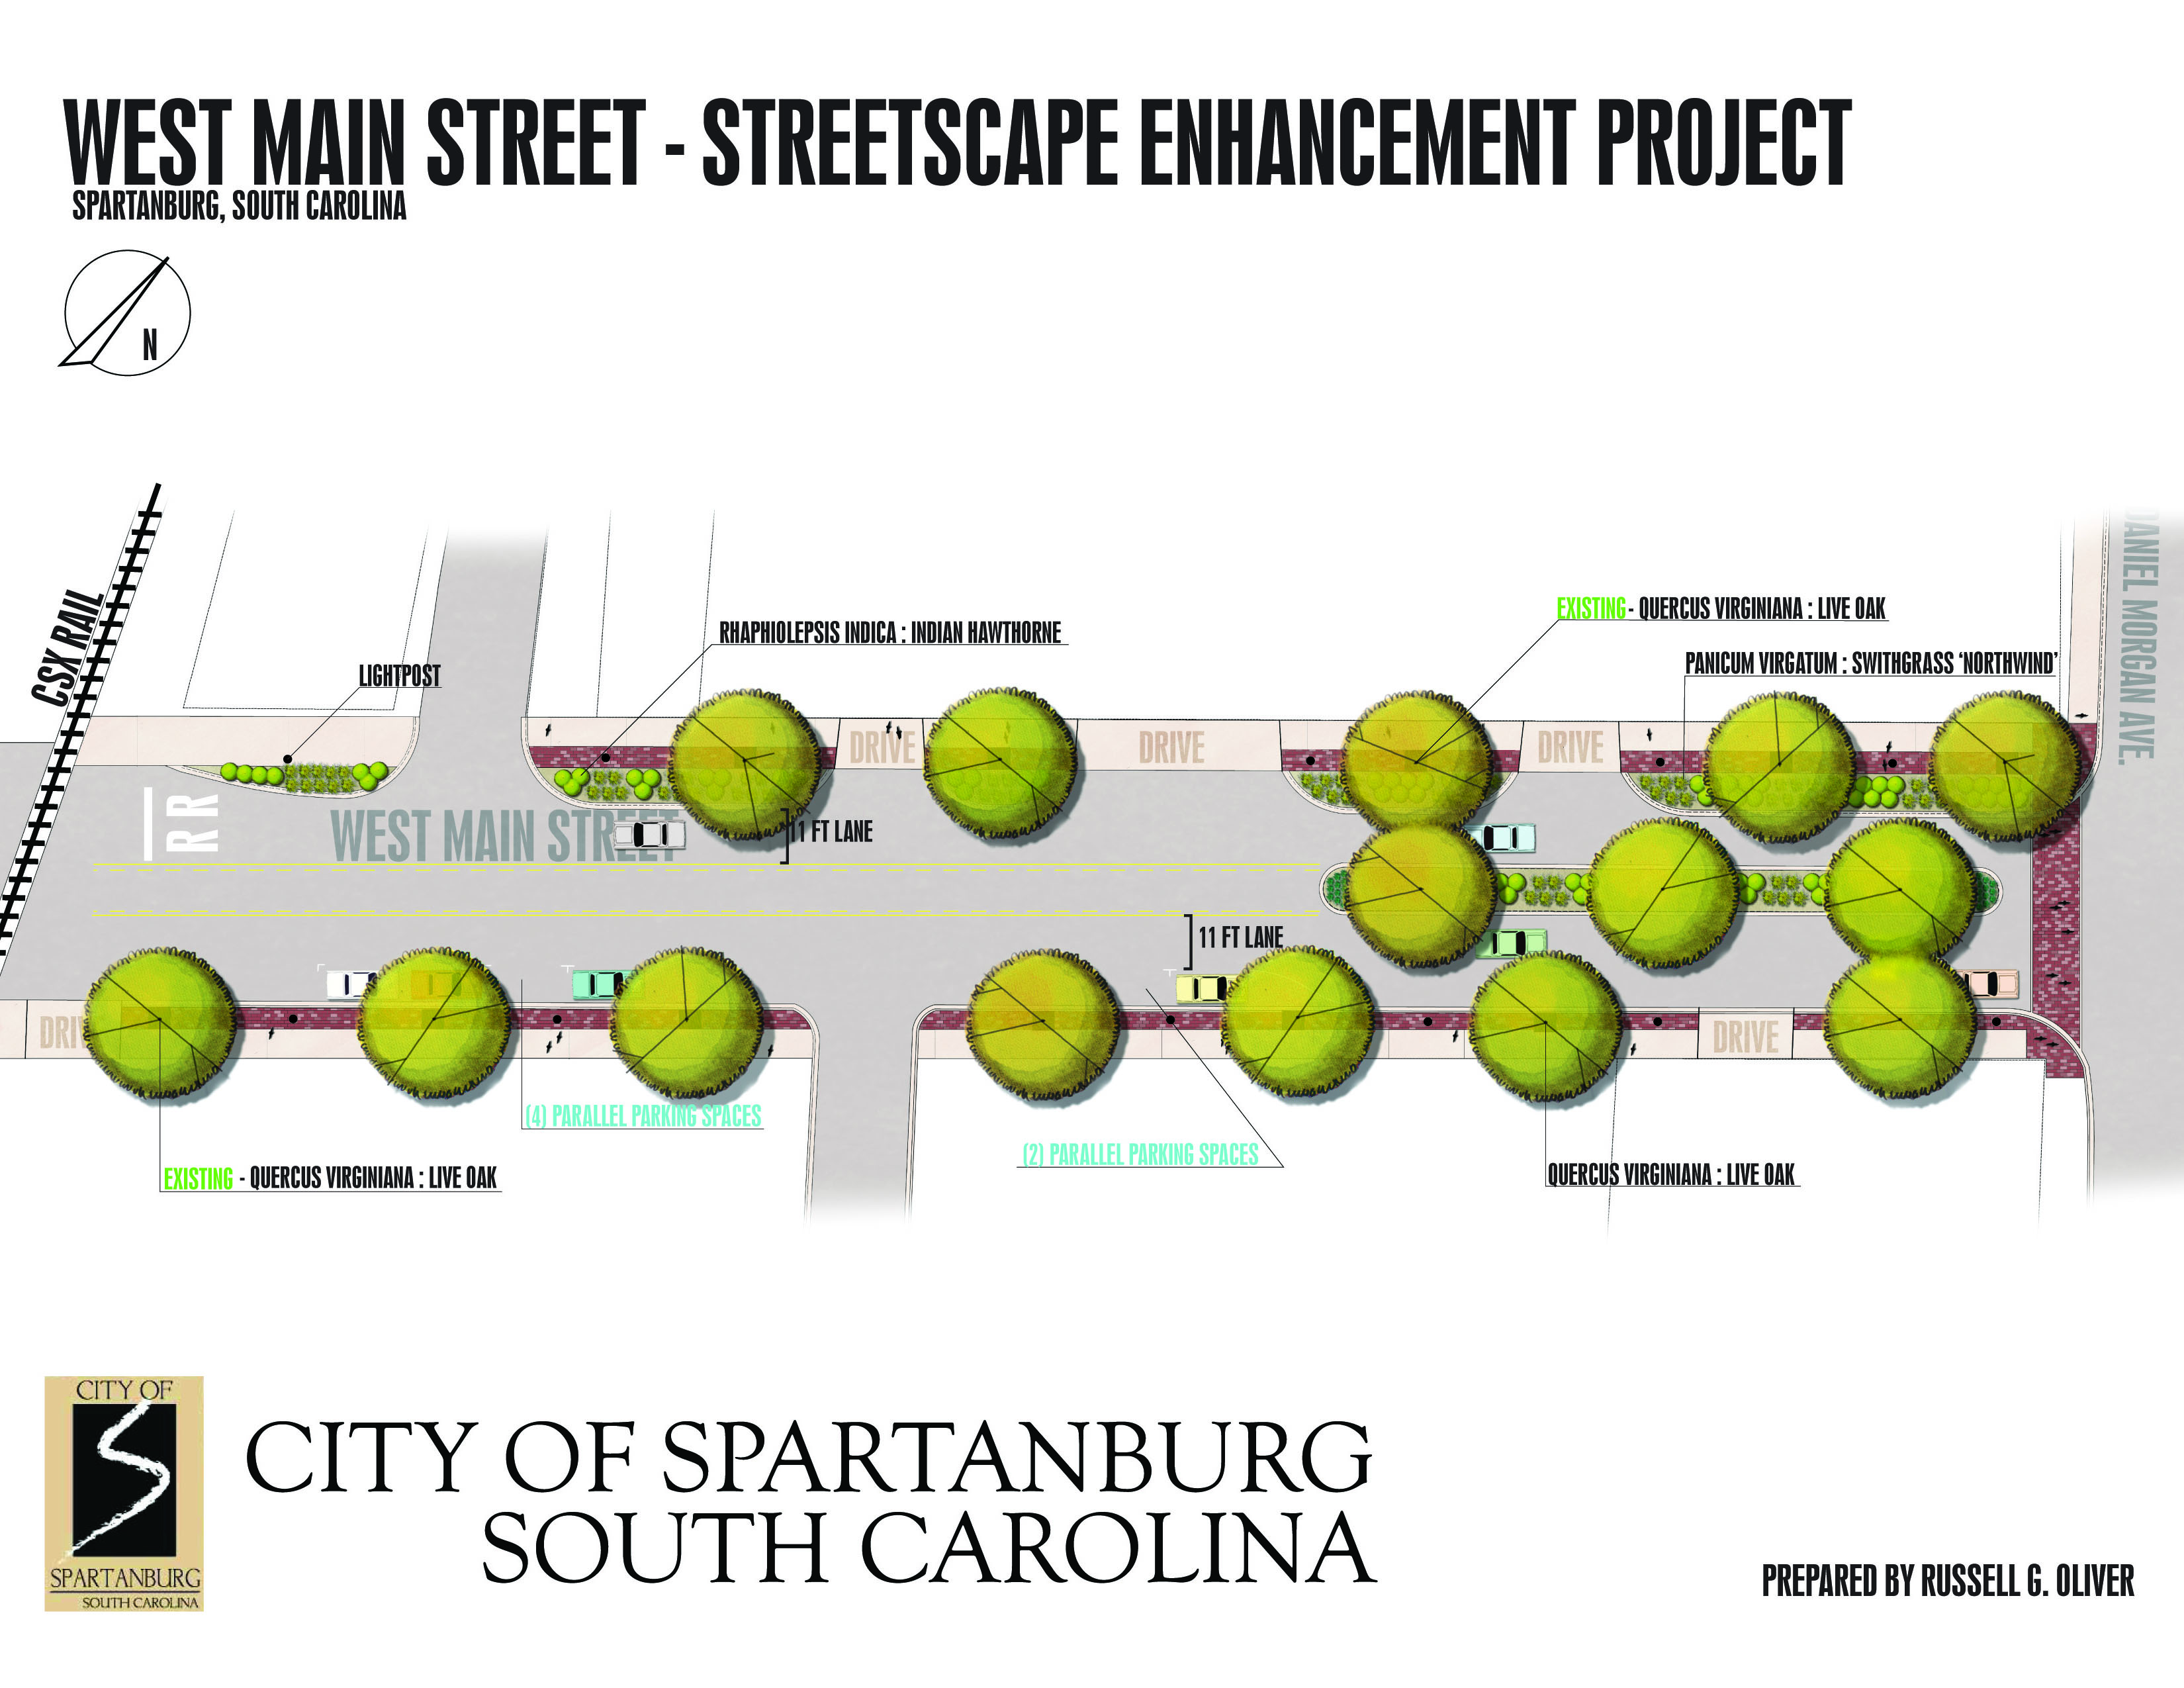 West Main Street Improvement Project rendering. Project to be completed in October 2012.